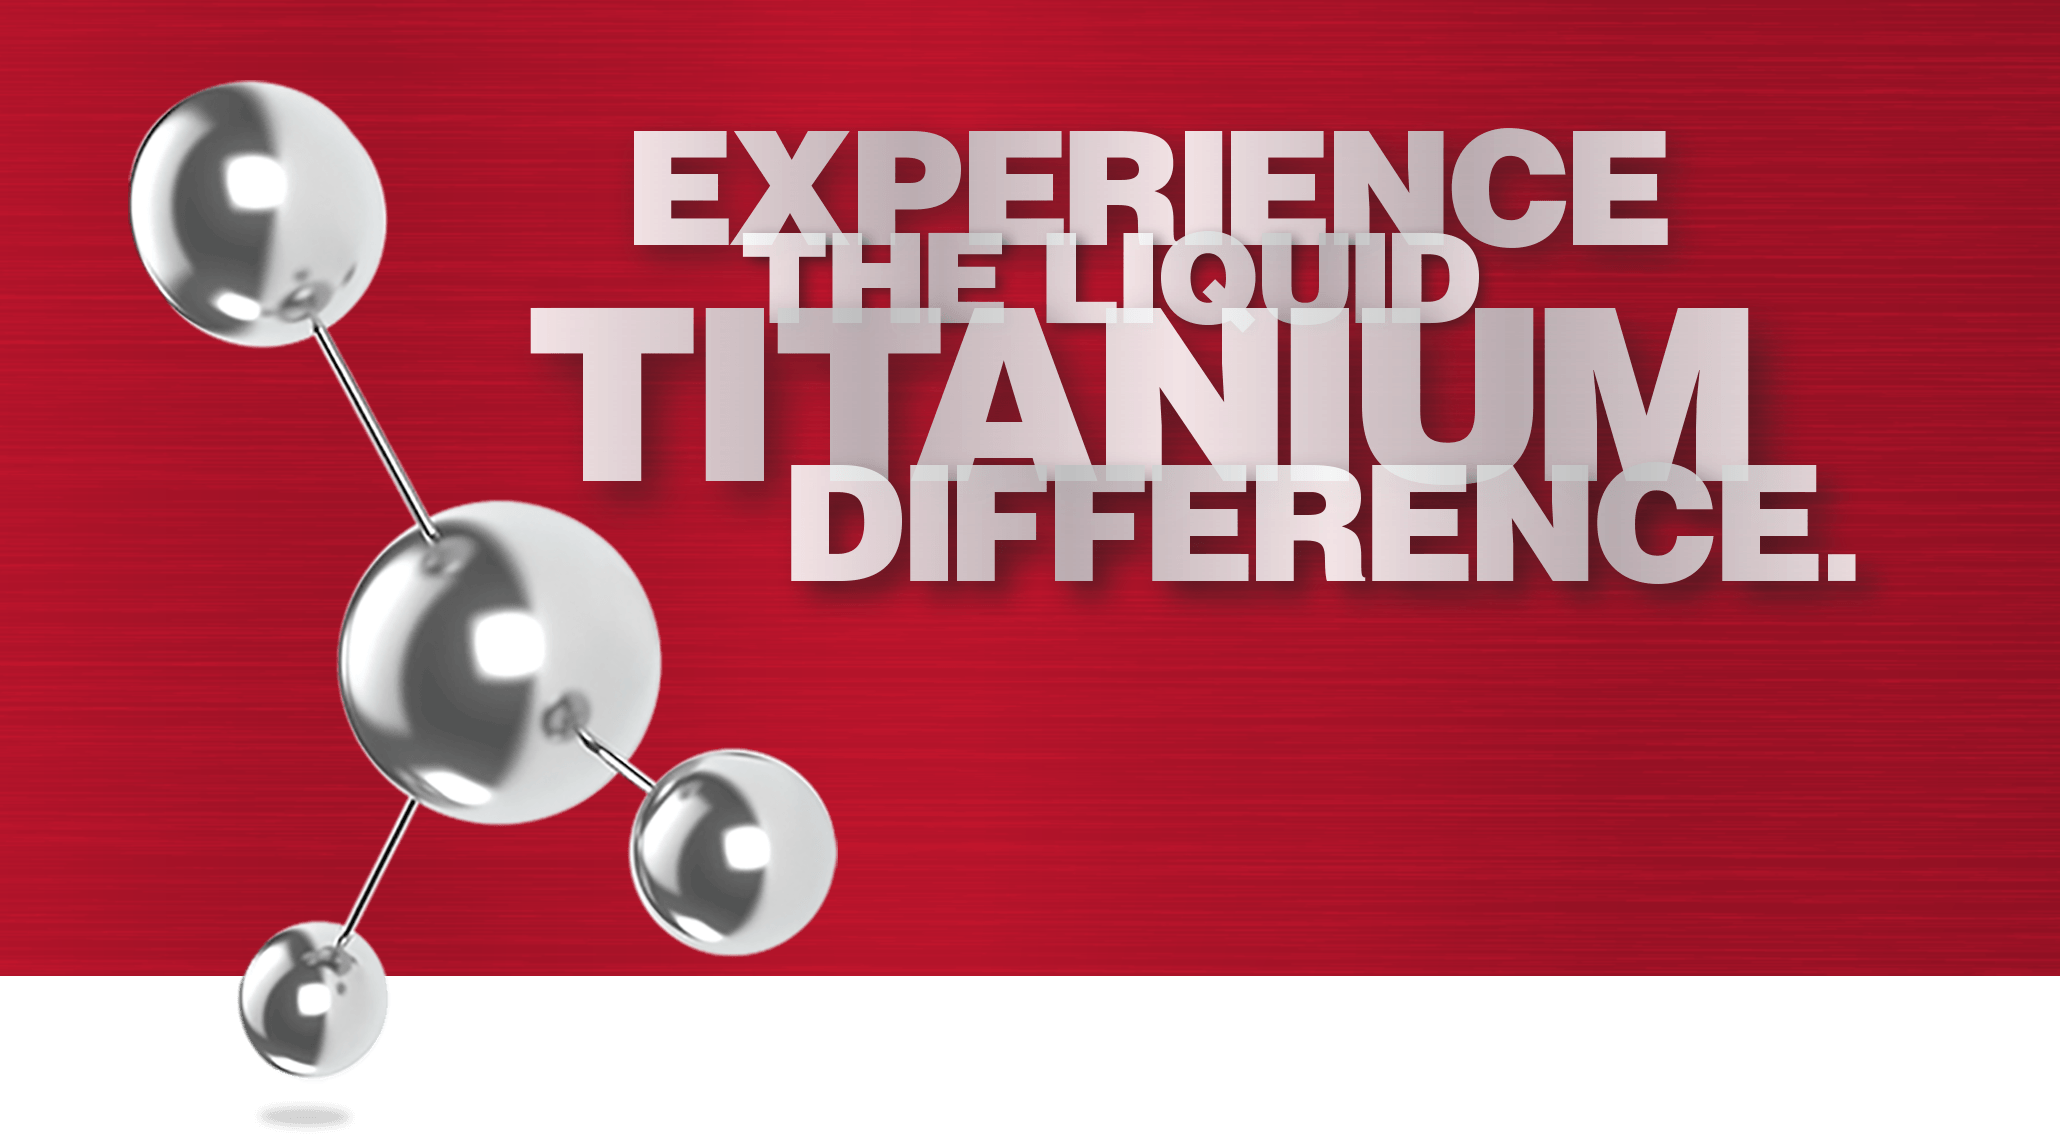 Liquid titanium difference